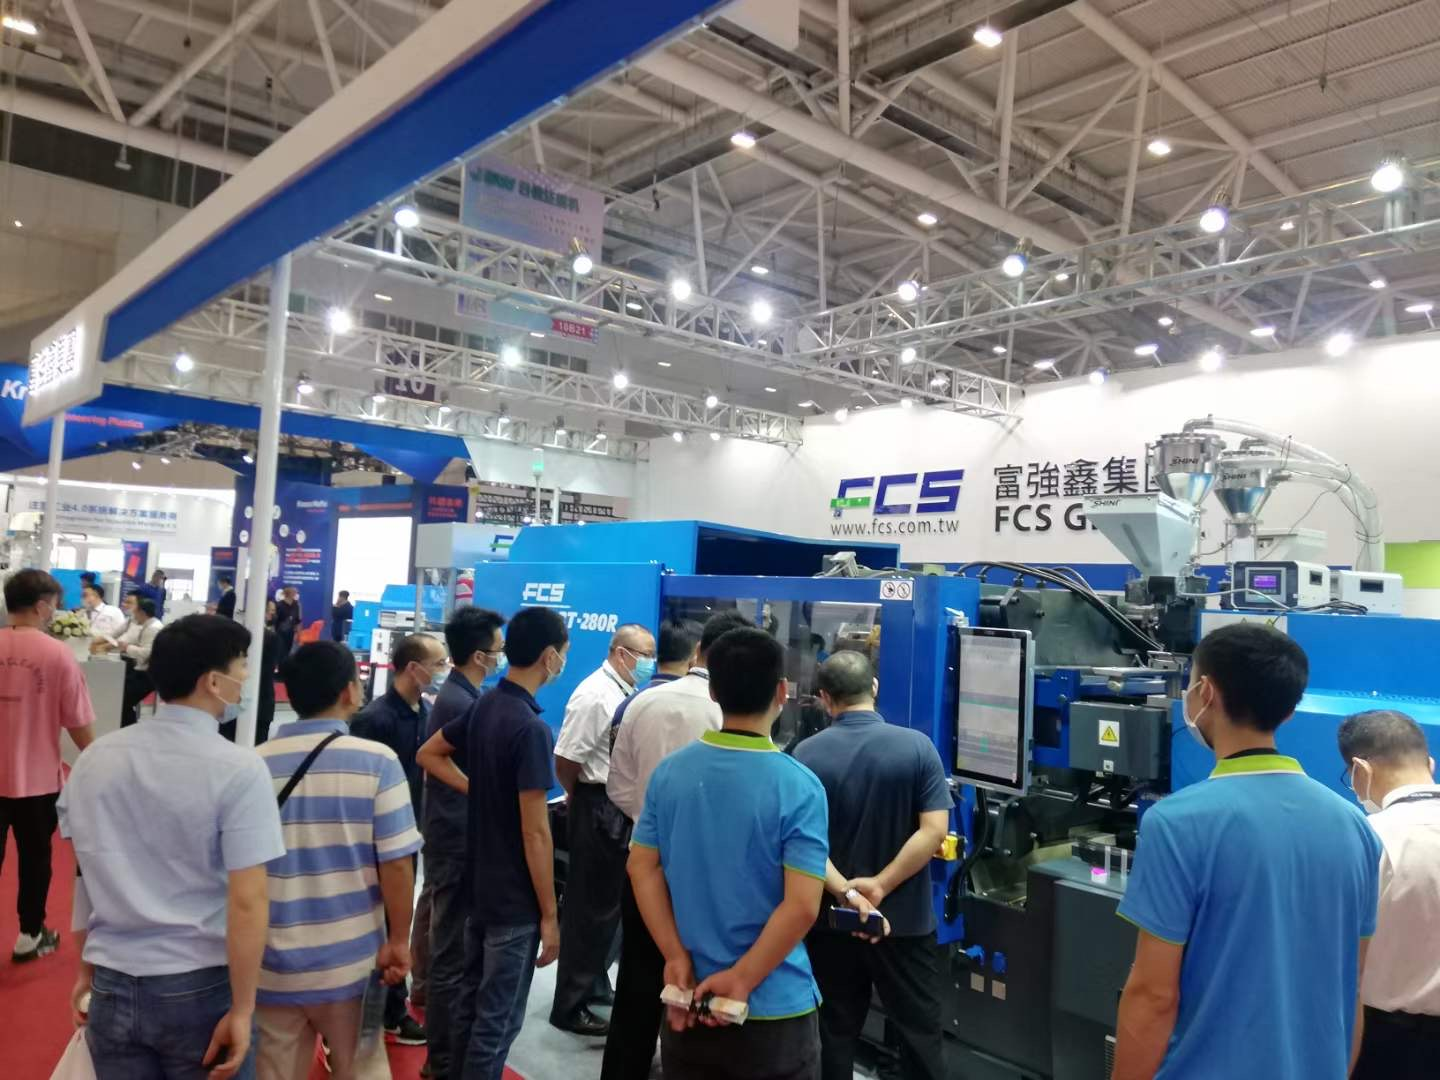 FCS_All-electric injection molding machine attracted lots of visitors